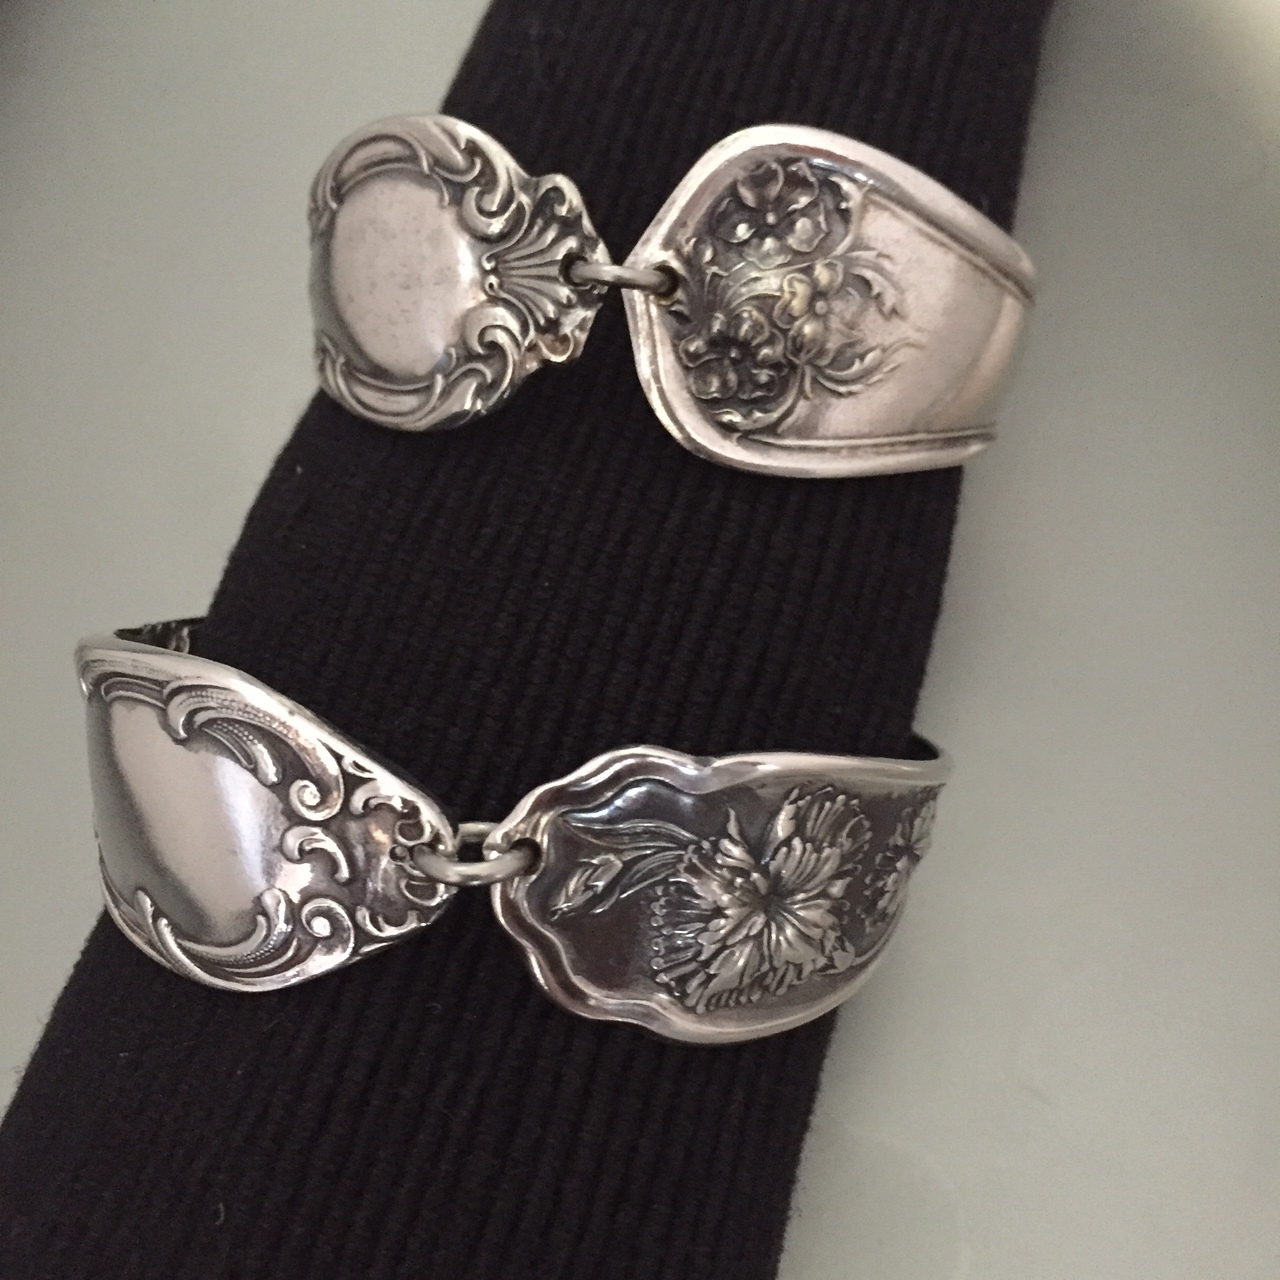 Asymmetrical Spoon Cuffs